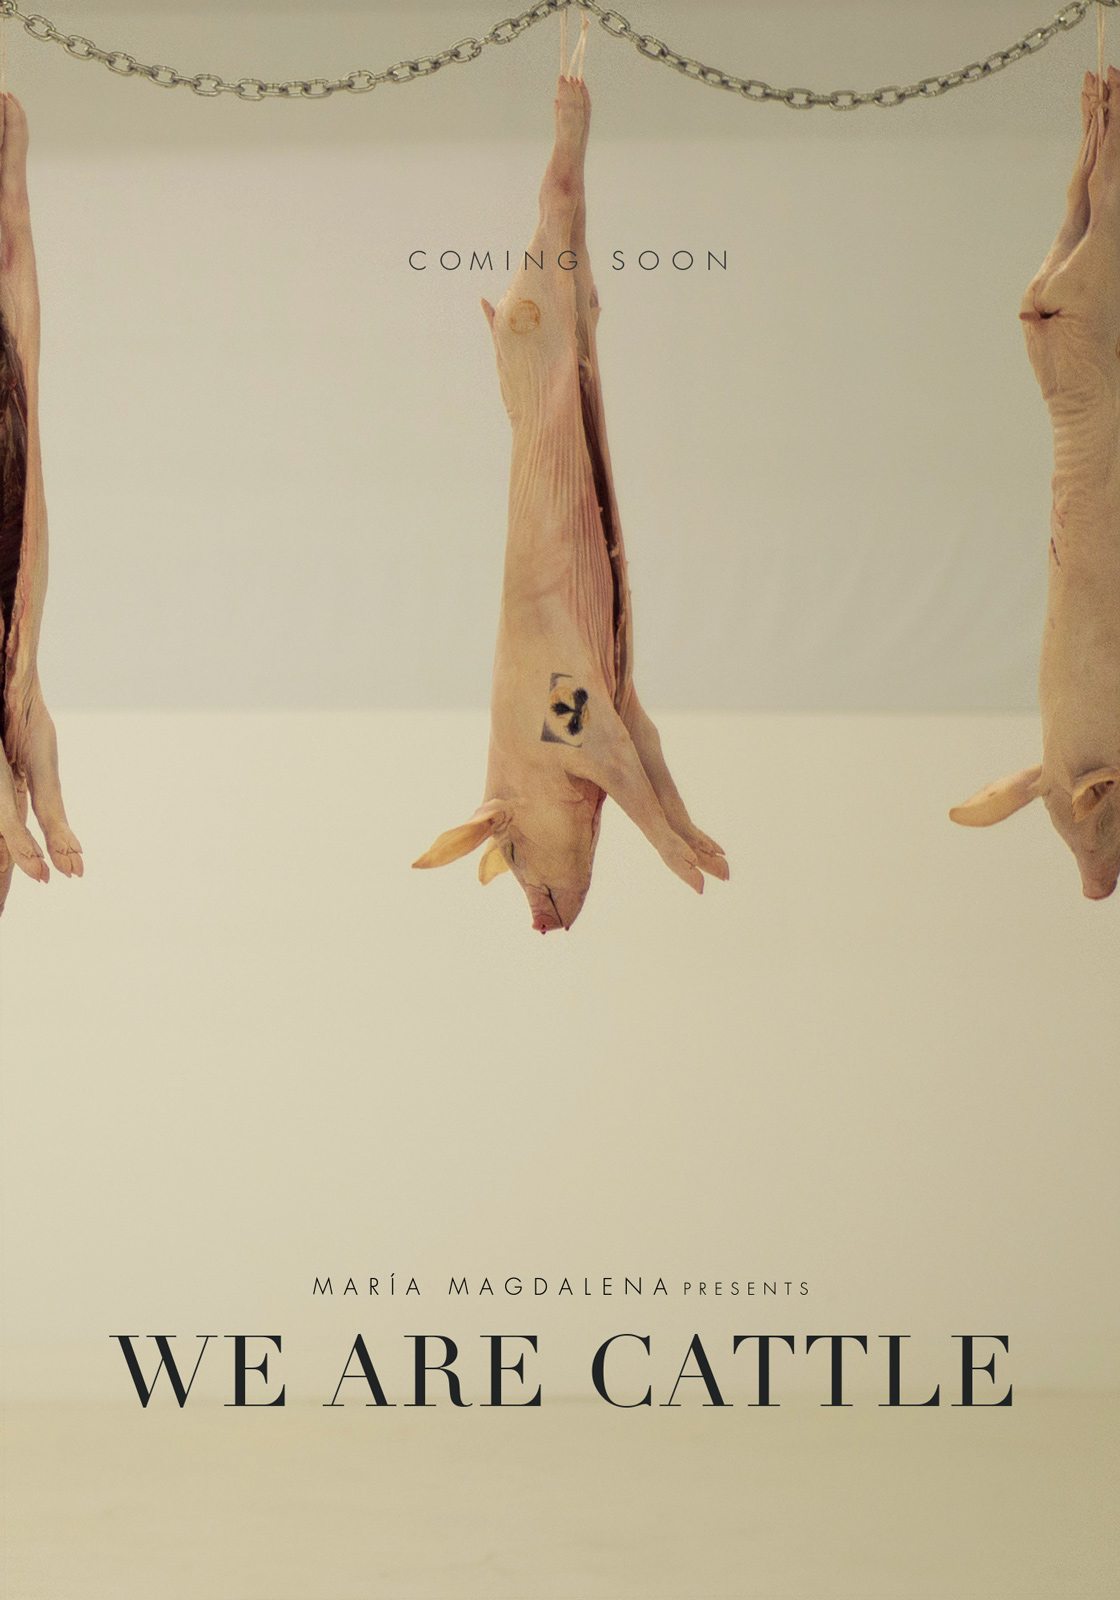 We are Cattle